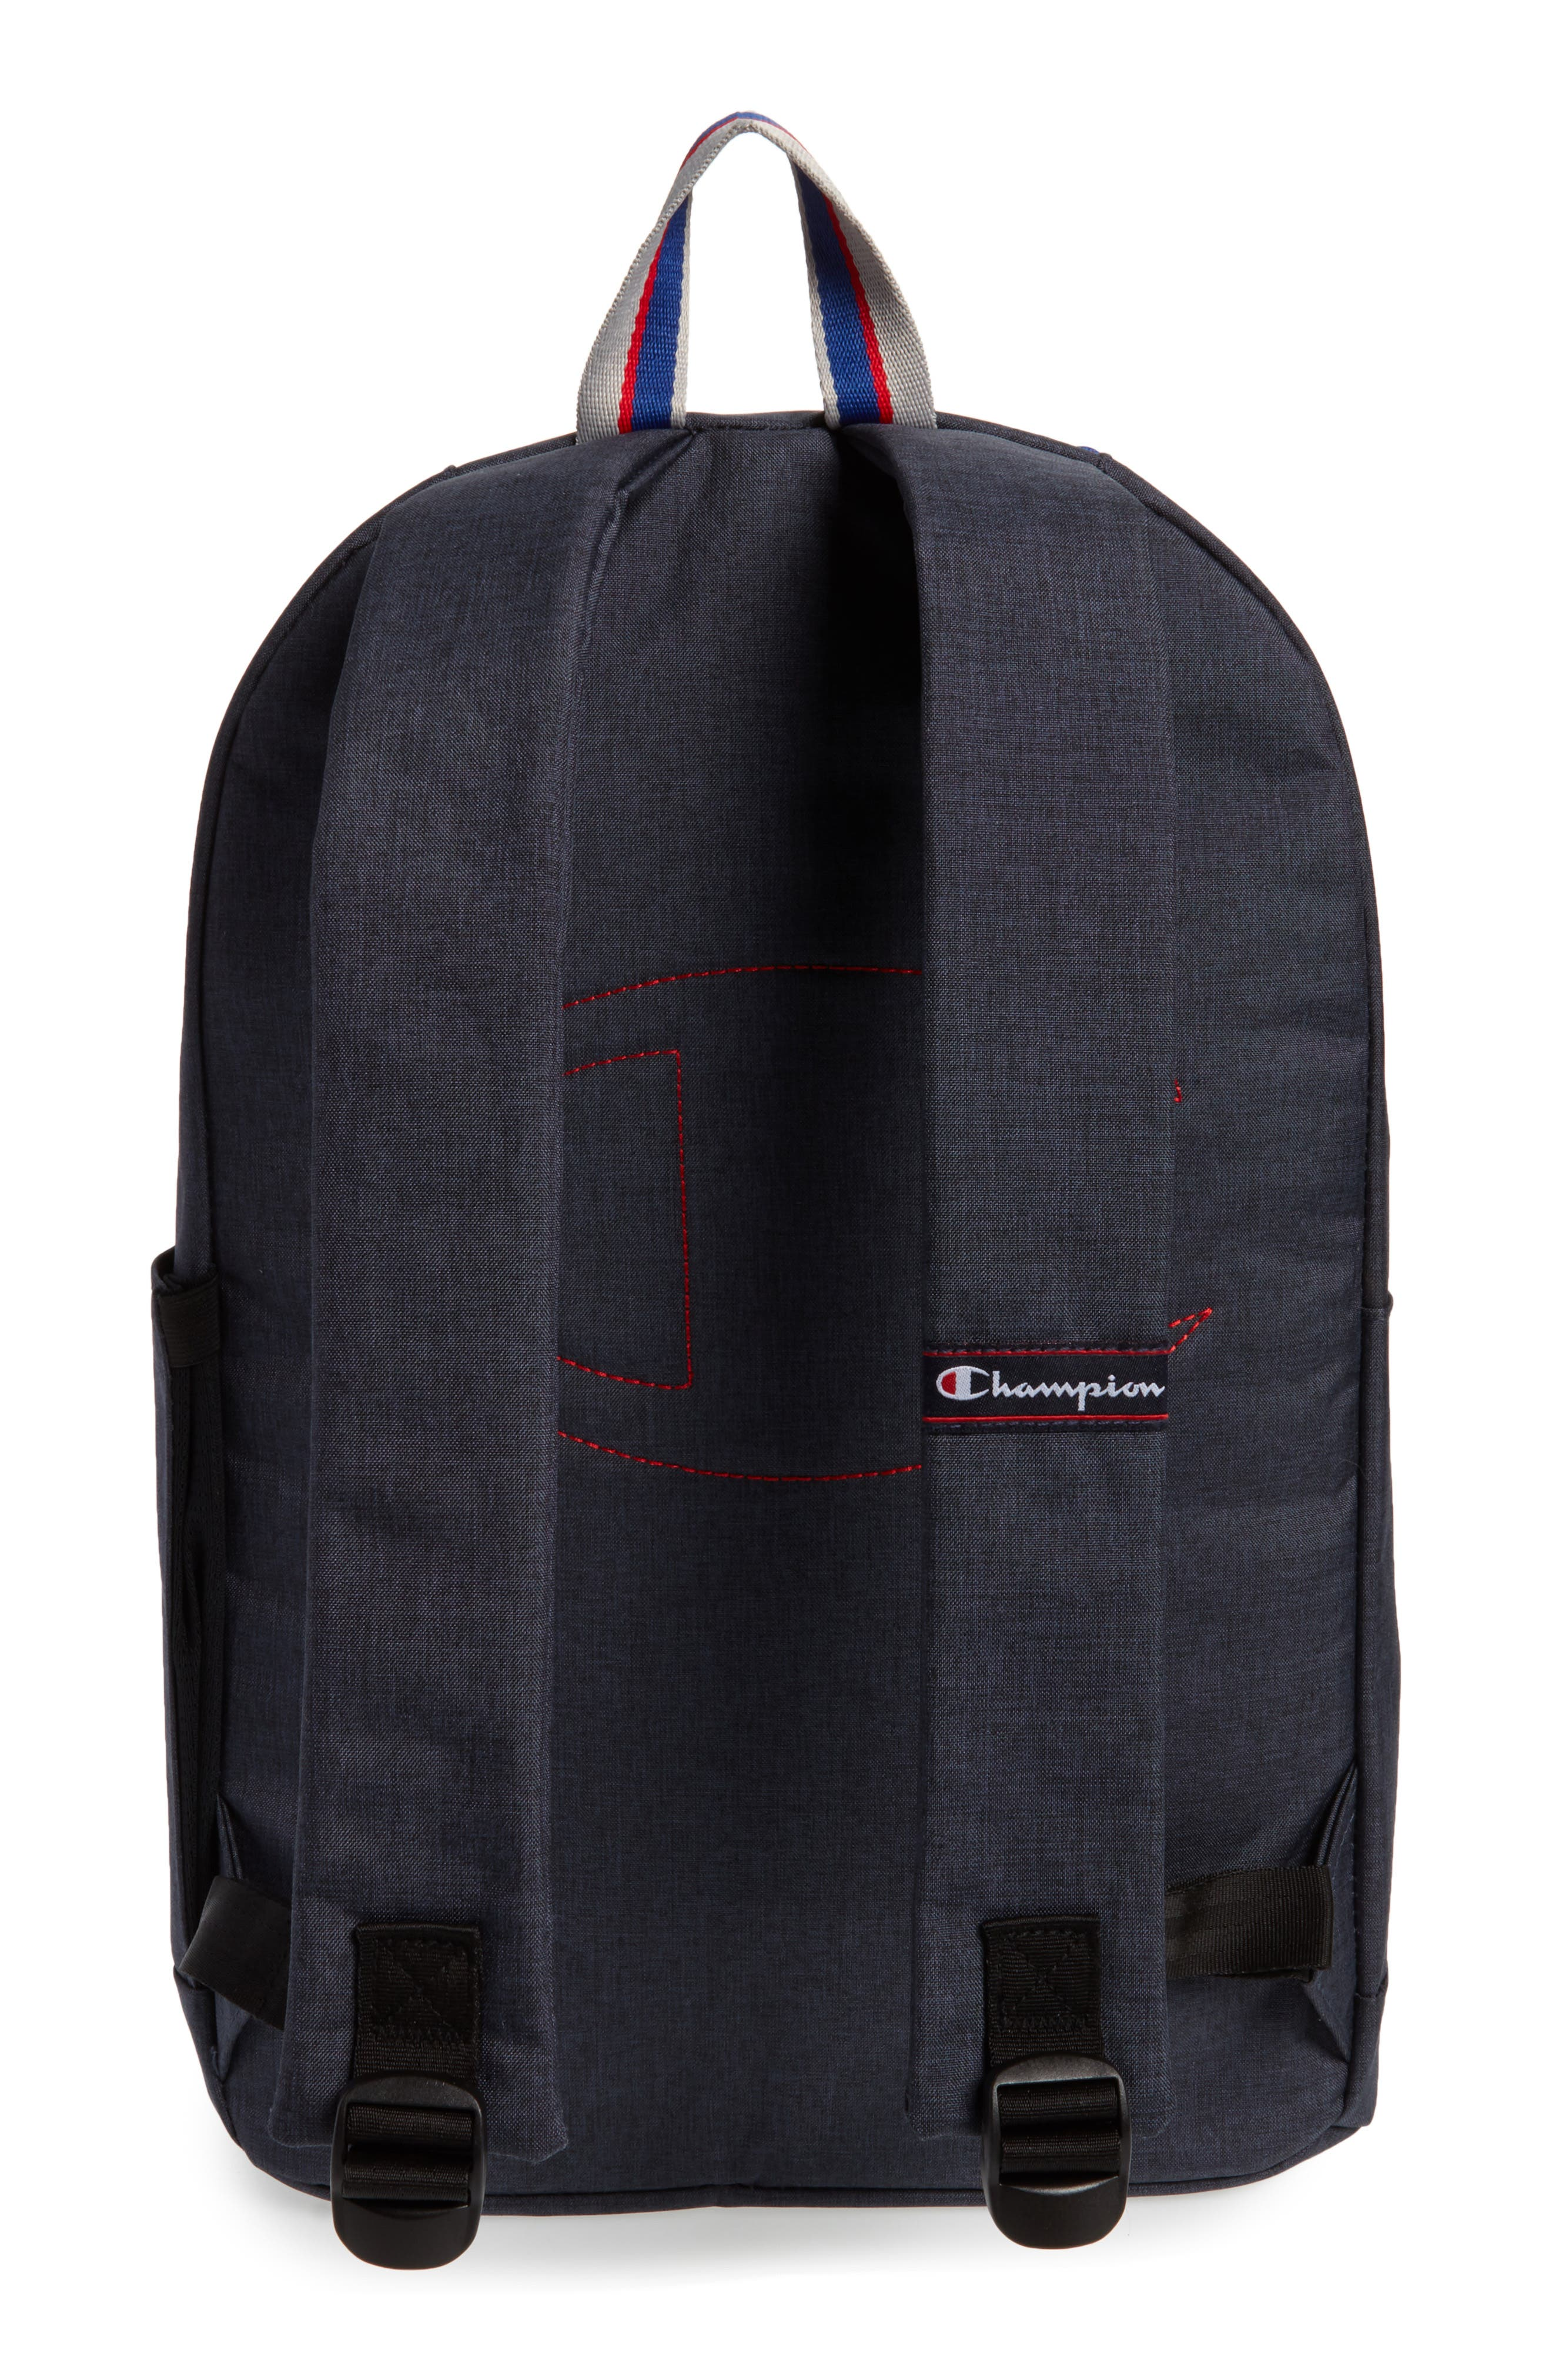 Supercize Backpack,                             Alternate thumbnail 3, color,                             Navy Heather